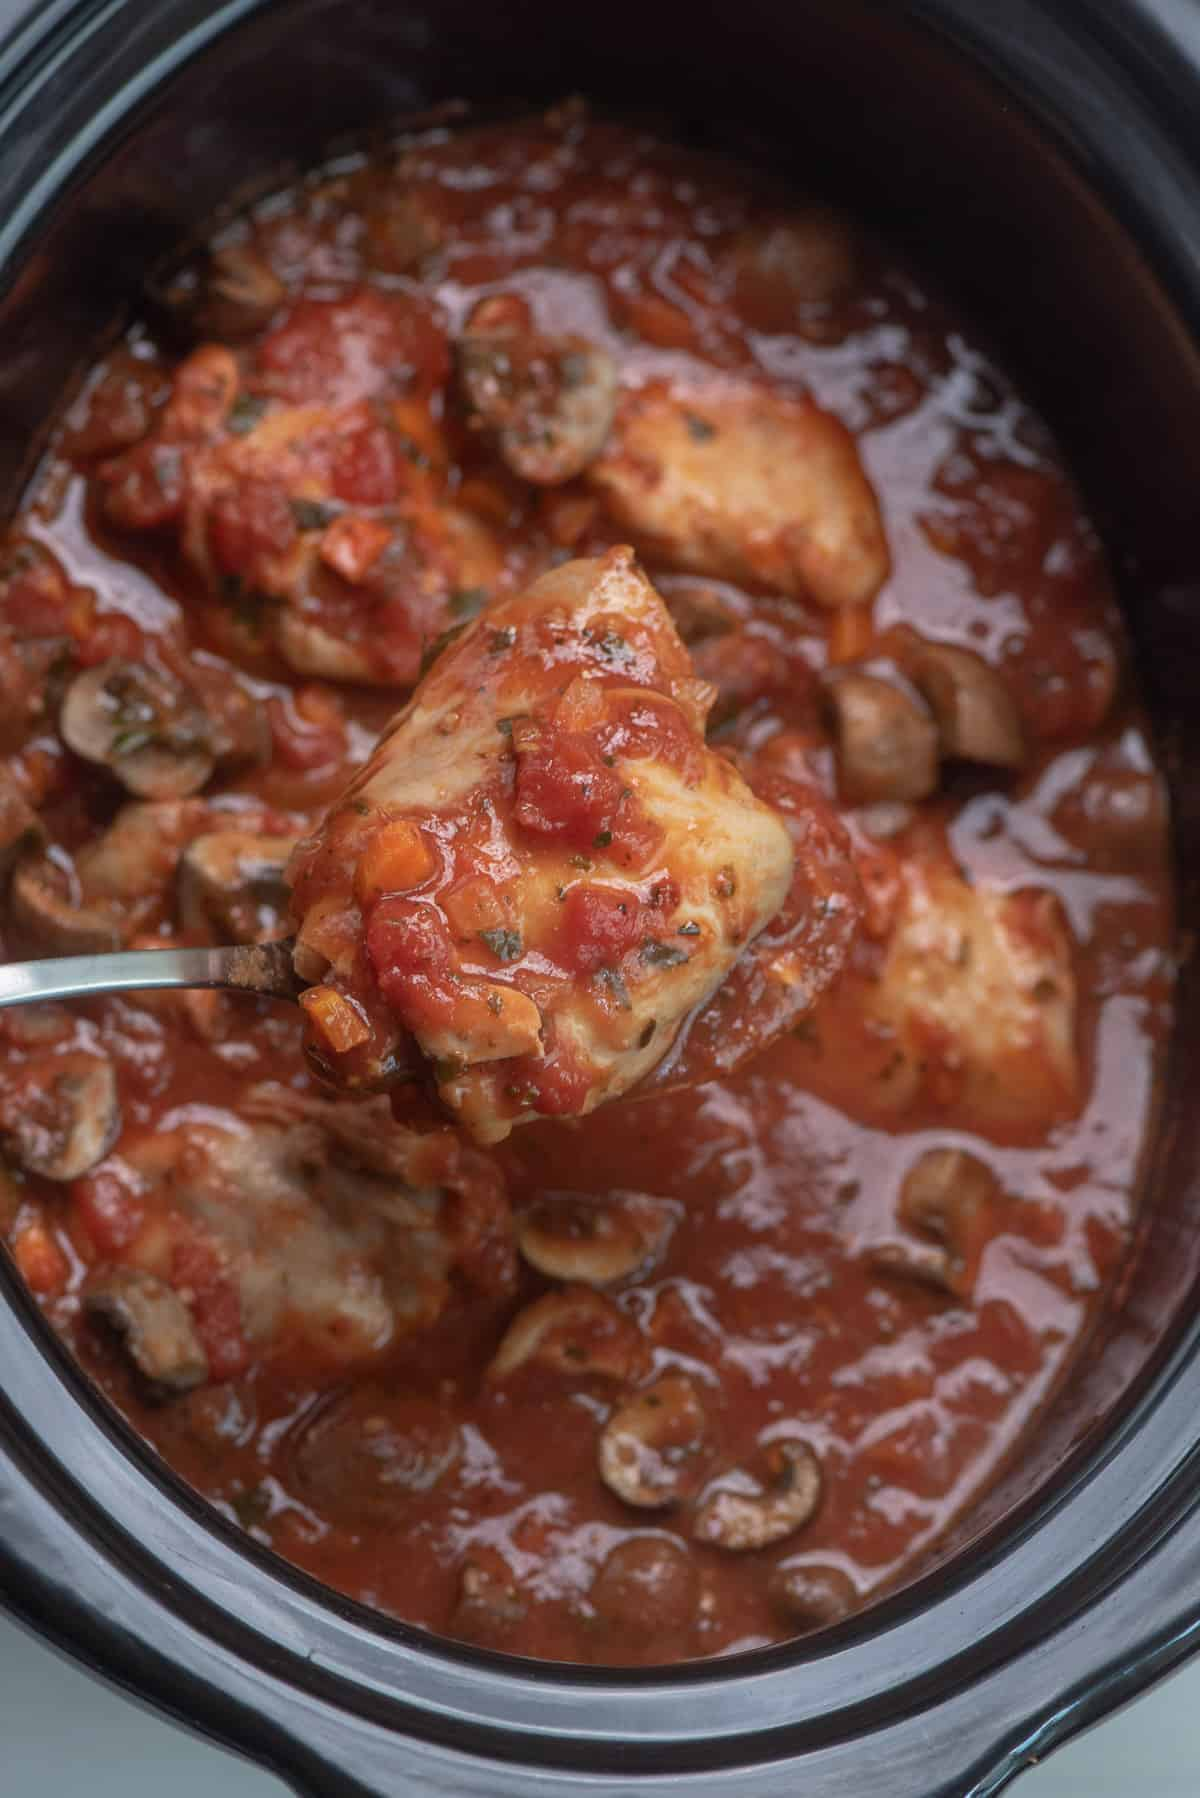 A spoon lifts a piece of Chicken Cacciatore from the slow cooker.